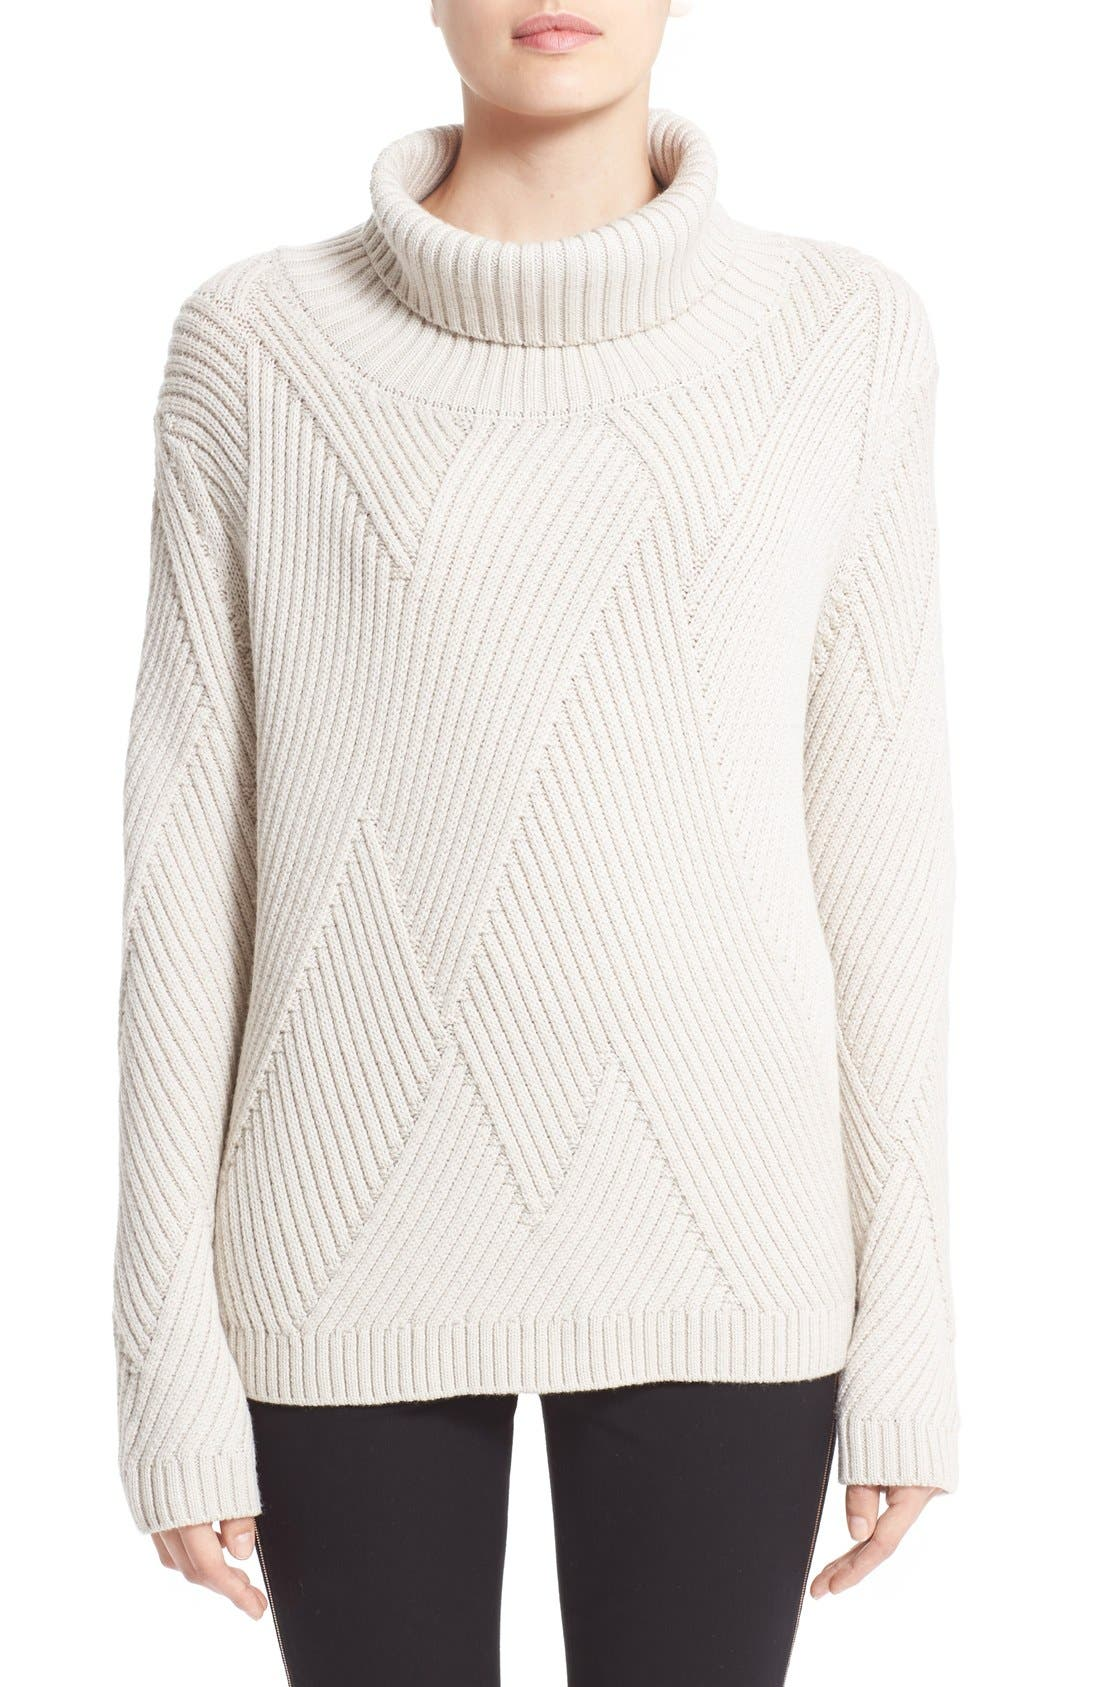 Alternate Image 1 Selected - rag & bone 'Blithe' Merino Wool Turtleneck Sweater